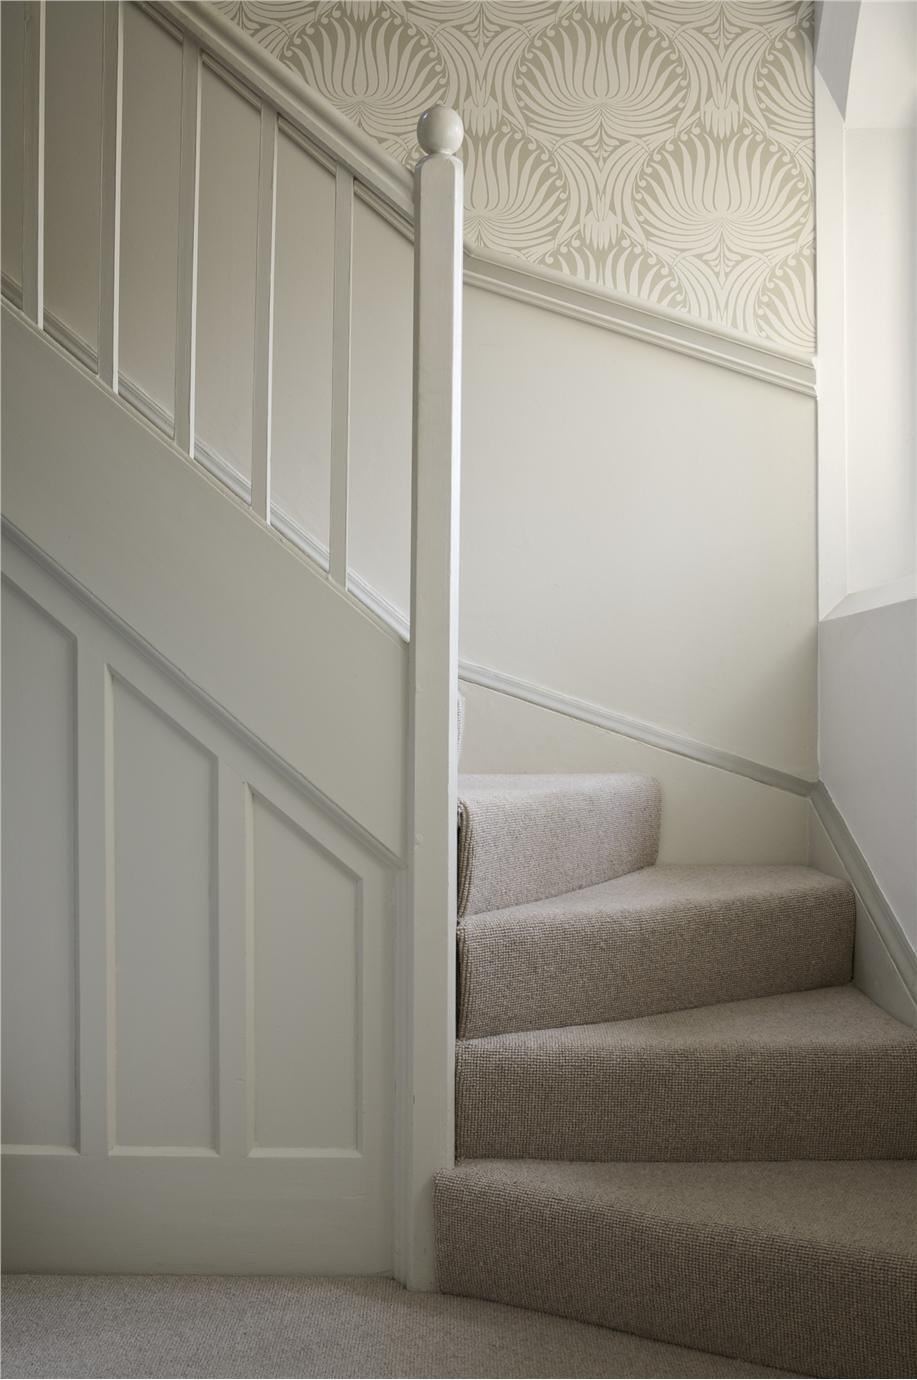 Hall Stairs In Lotus Wimborne White Slipper Satin Contributed By Farrow Ball